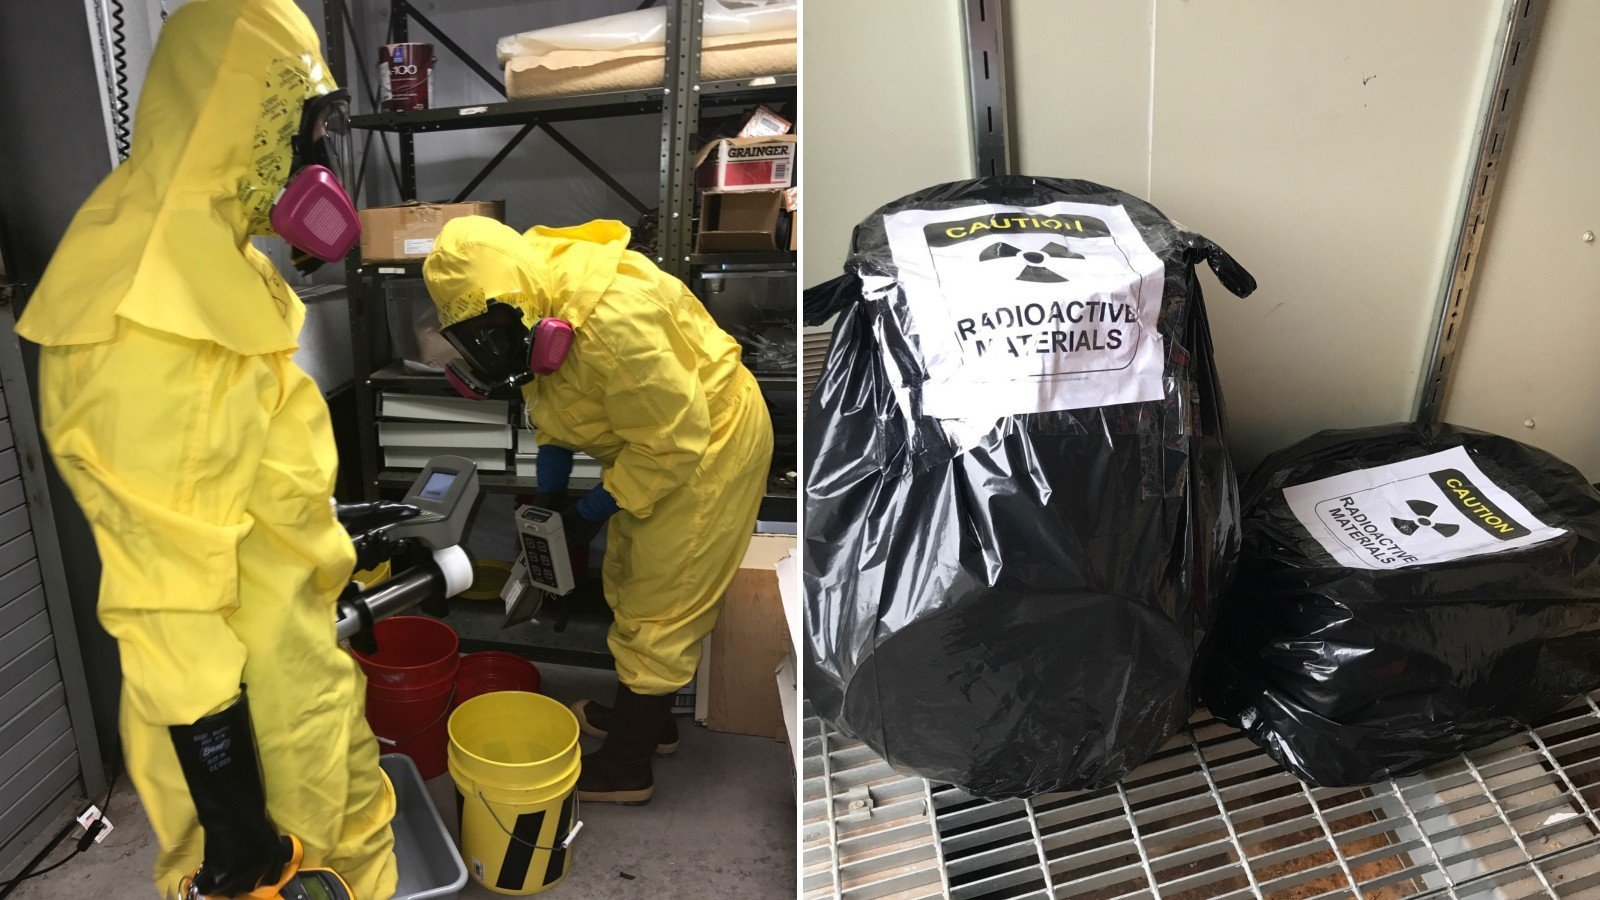 Buckets of uranium ore were found at the Grand Canyon museum. After NPS employees got rid of the ore, OSHA inspectors found the empty buckets back at the facility.